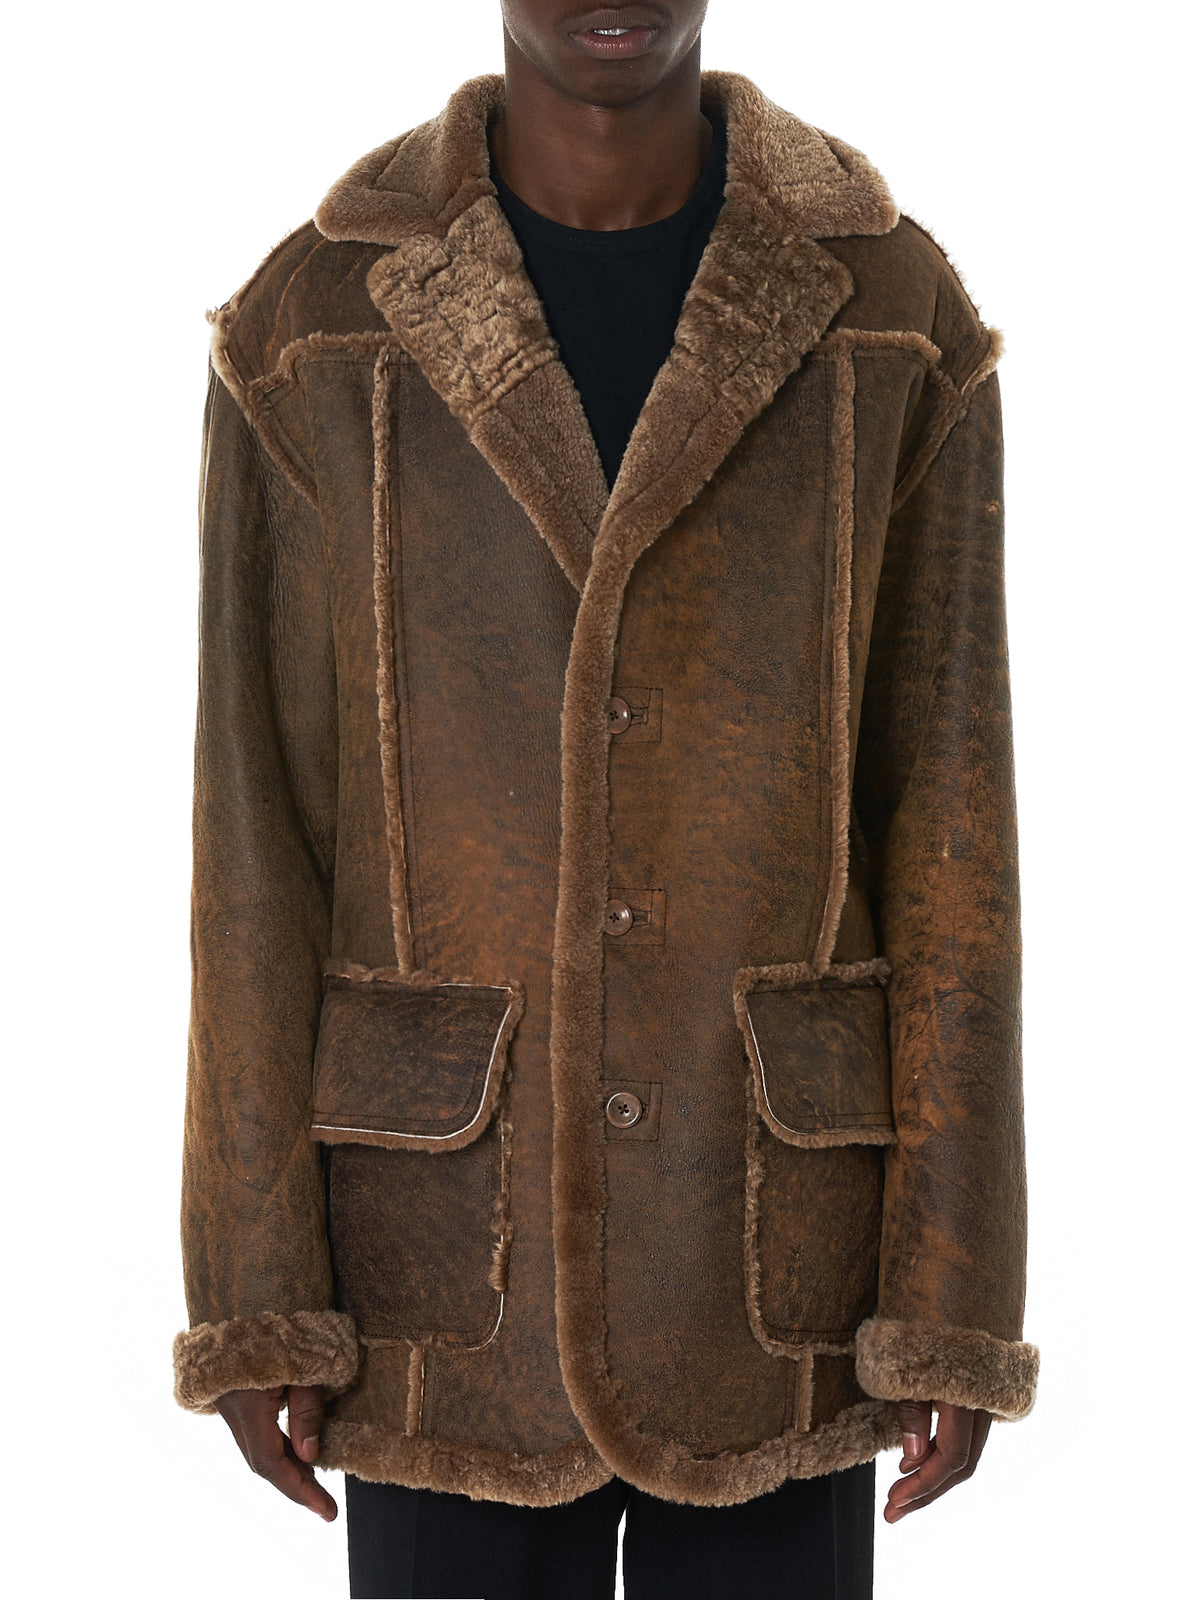 NAHMIAS Shearling Coat - Hlorenzo Front